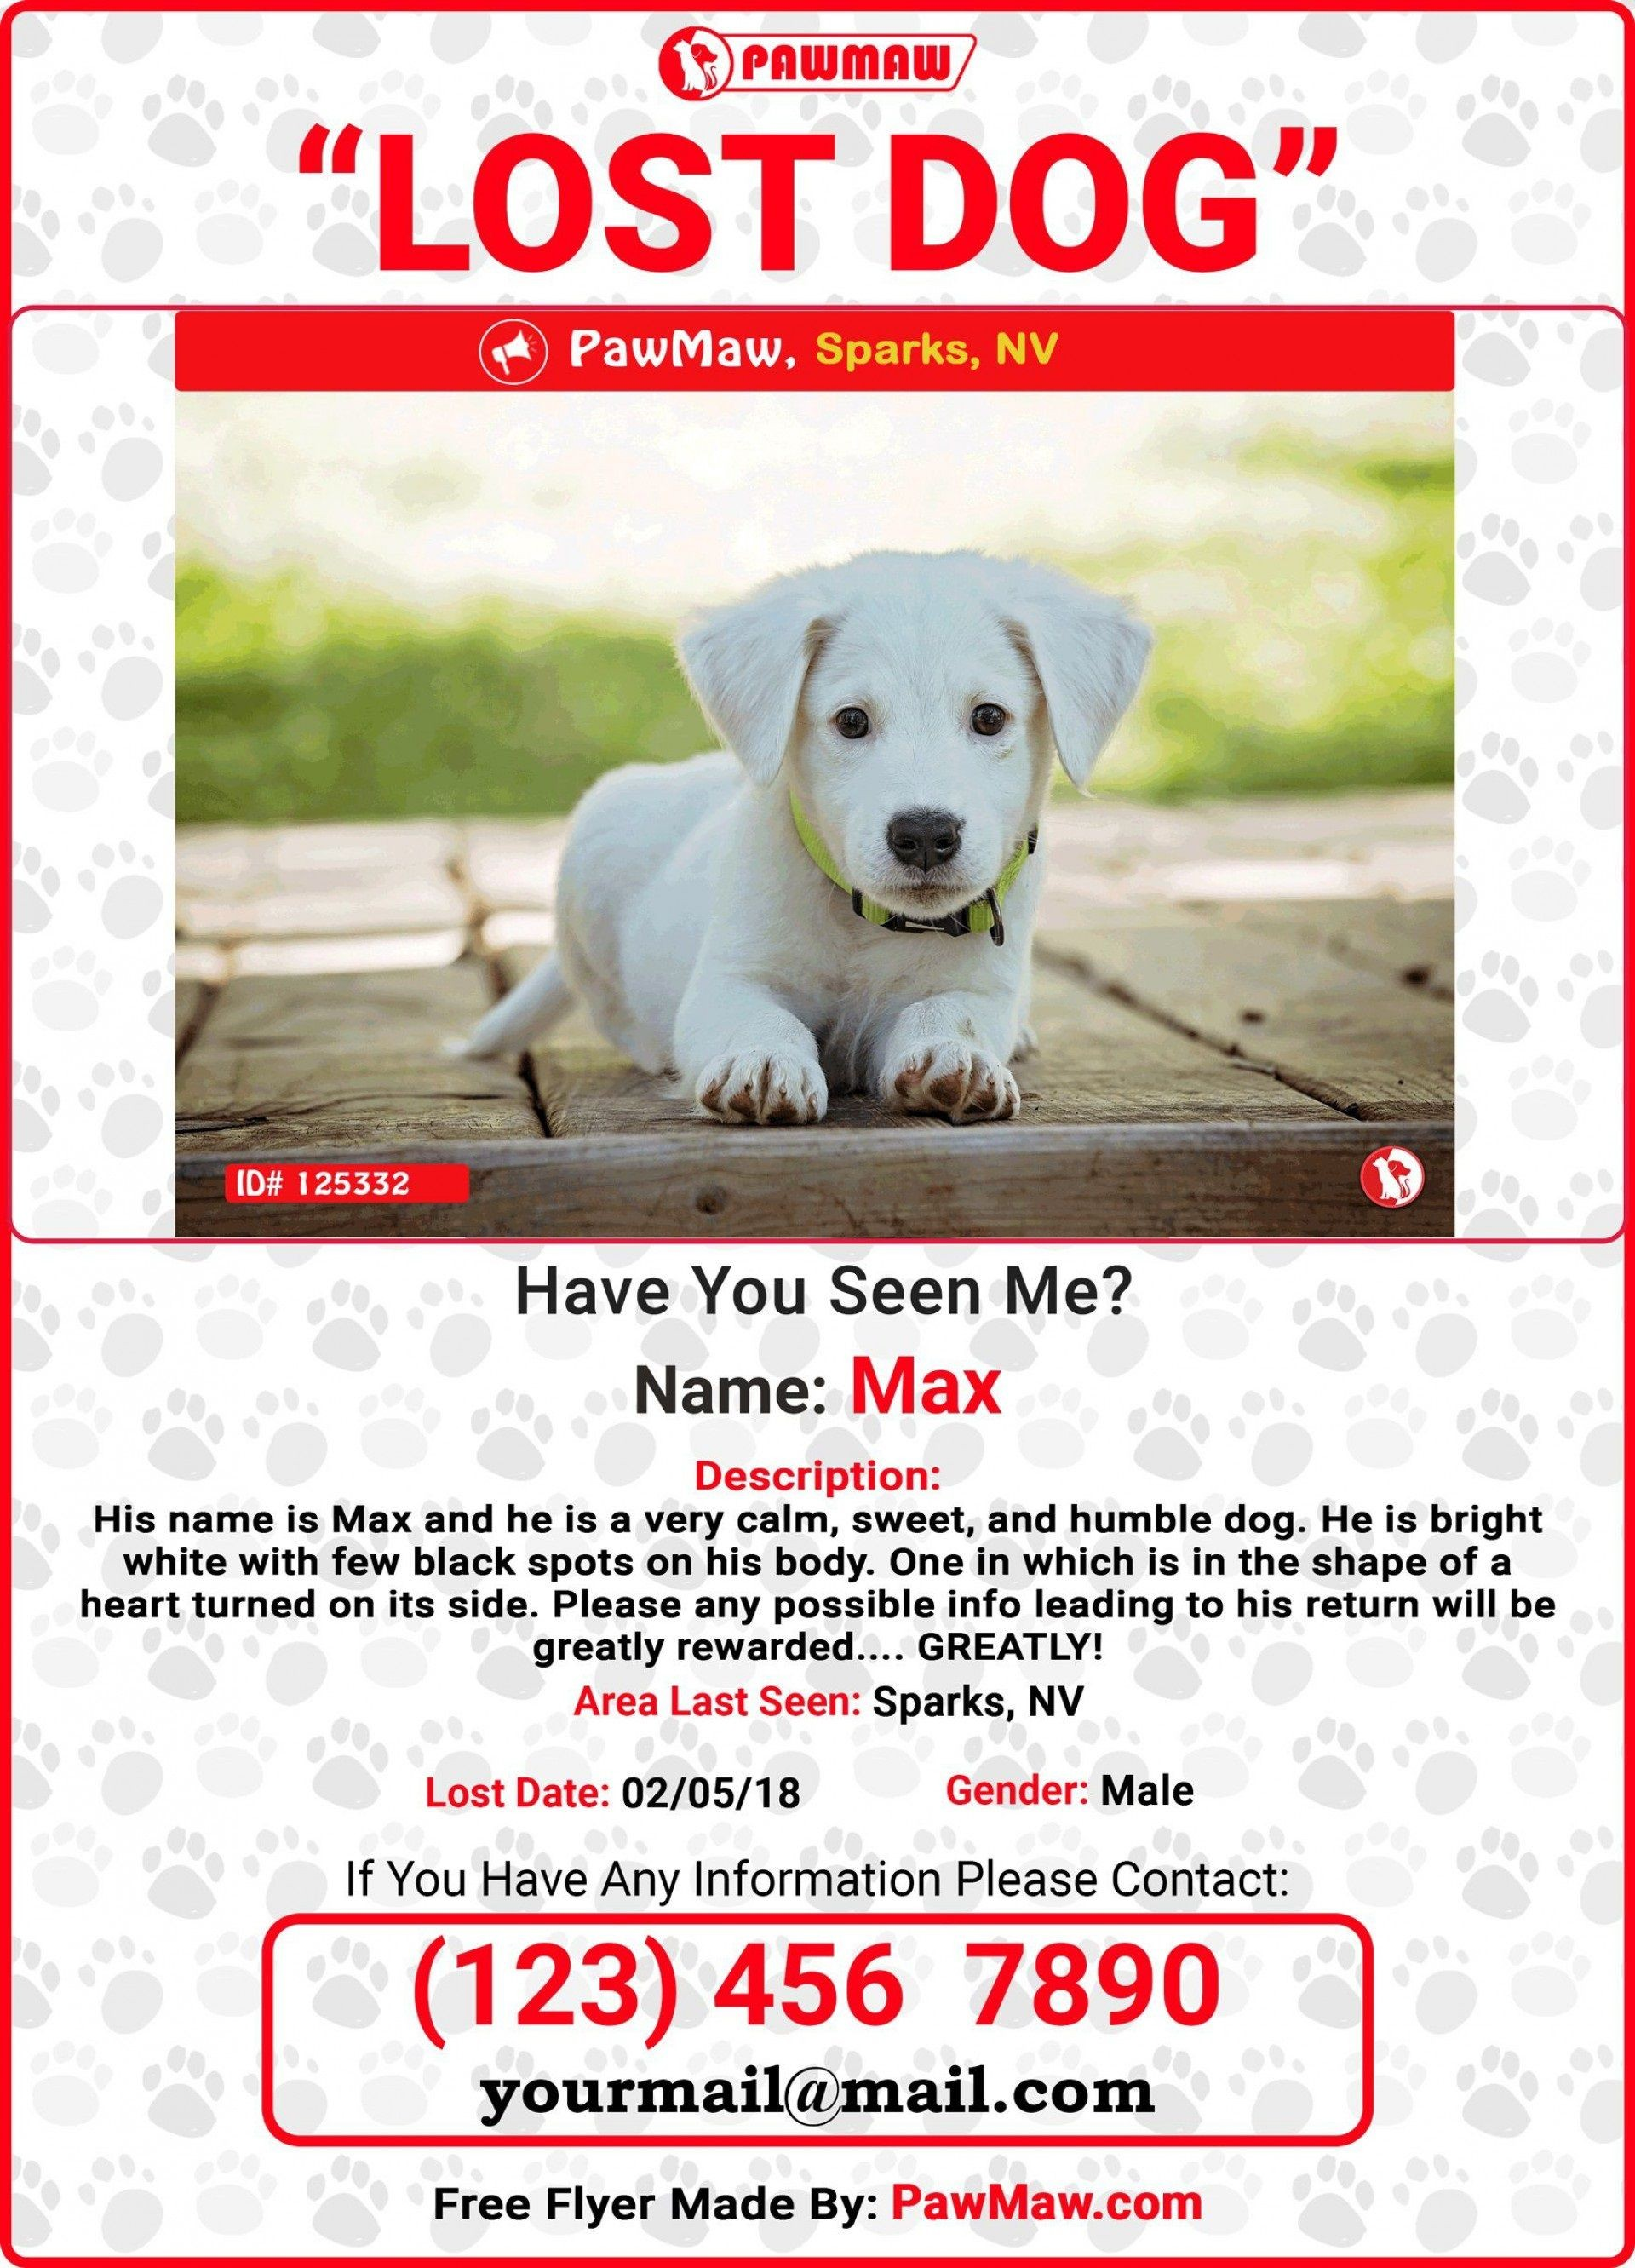 009 Unique Missing Dog Flyer Template Sample  Lost Poster1920